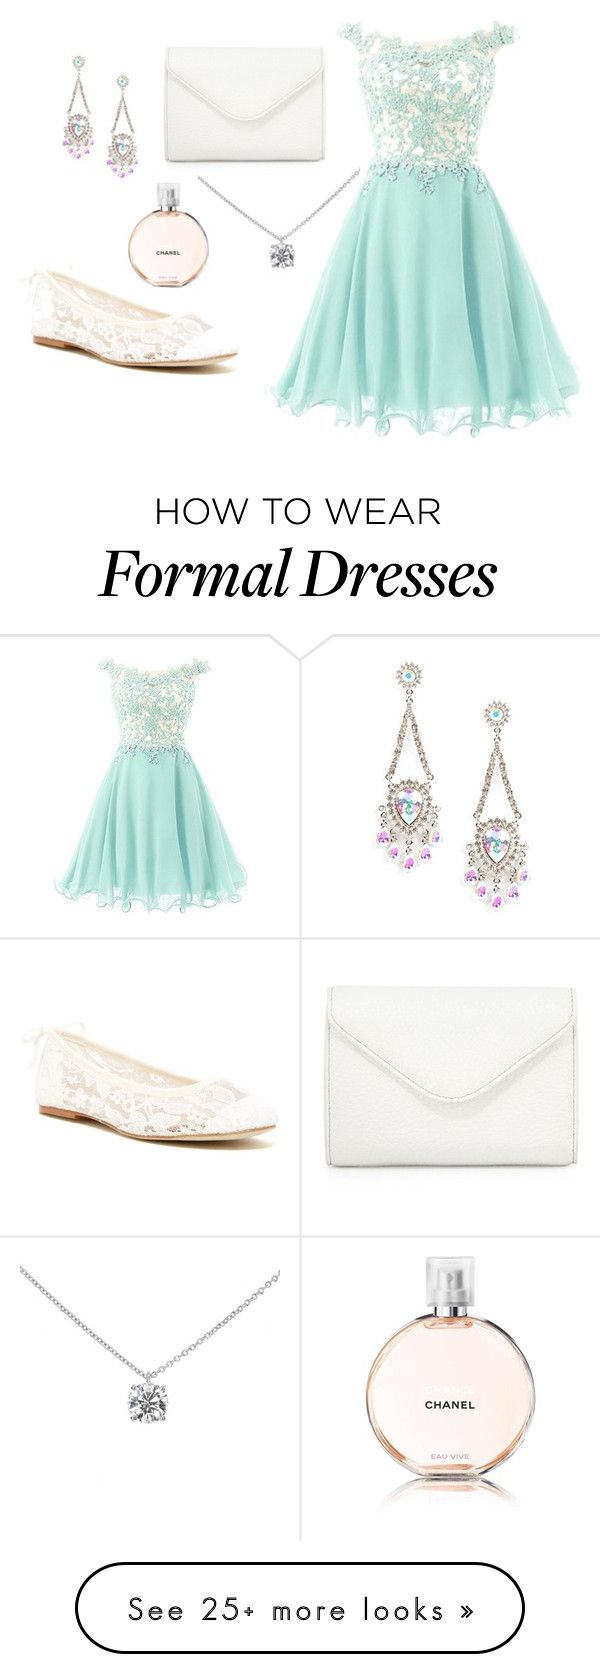 """Geen titel #1"" by lise-buelen on Polyvore featuring Soludos, Neiman Marcus, Chanel and Tiffany & Co."